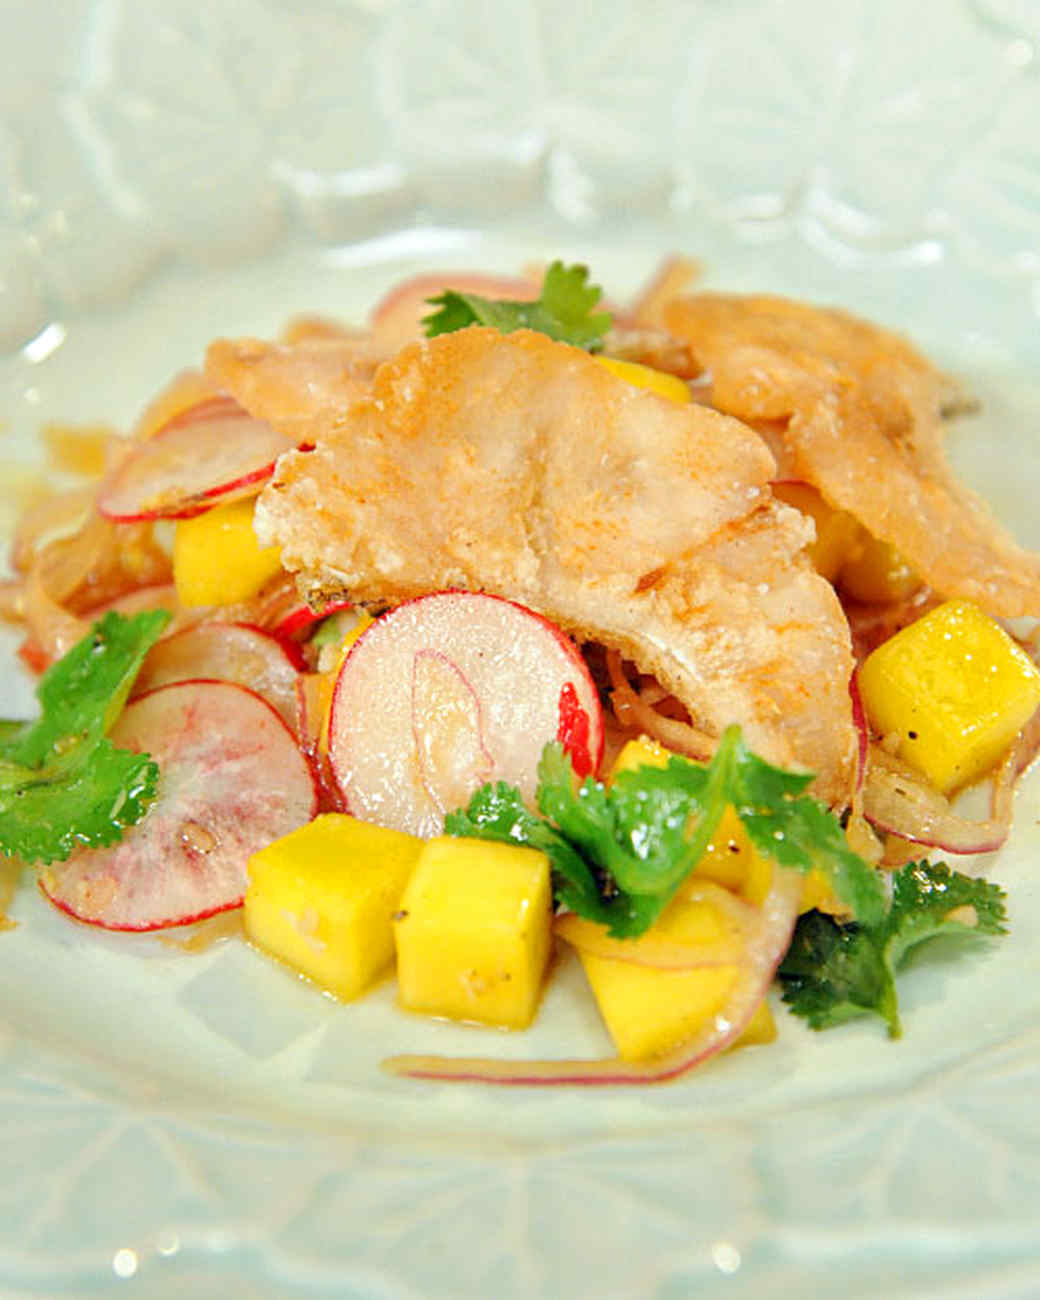 Crispy Fish Salad with Red Onion, Mango, and Soy-Lime Vinaigrette